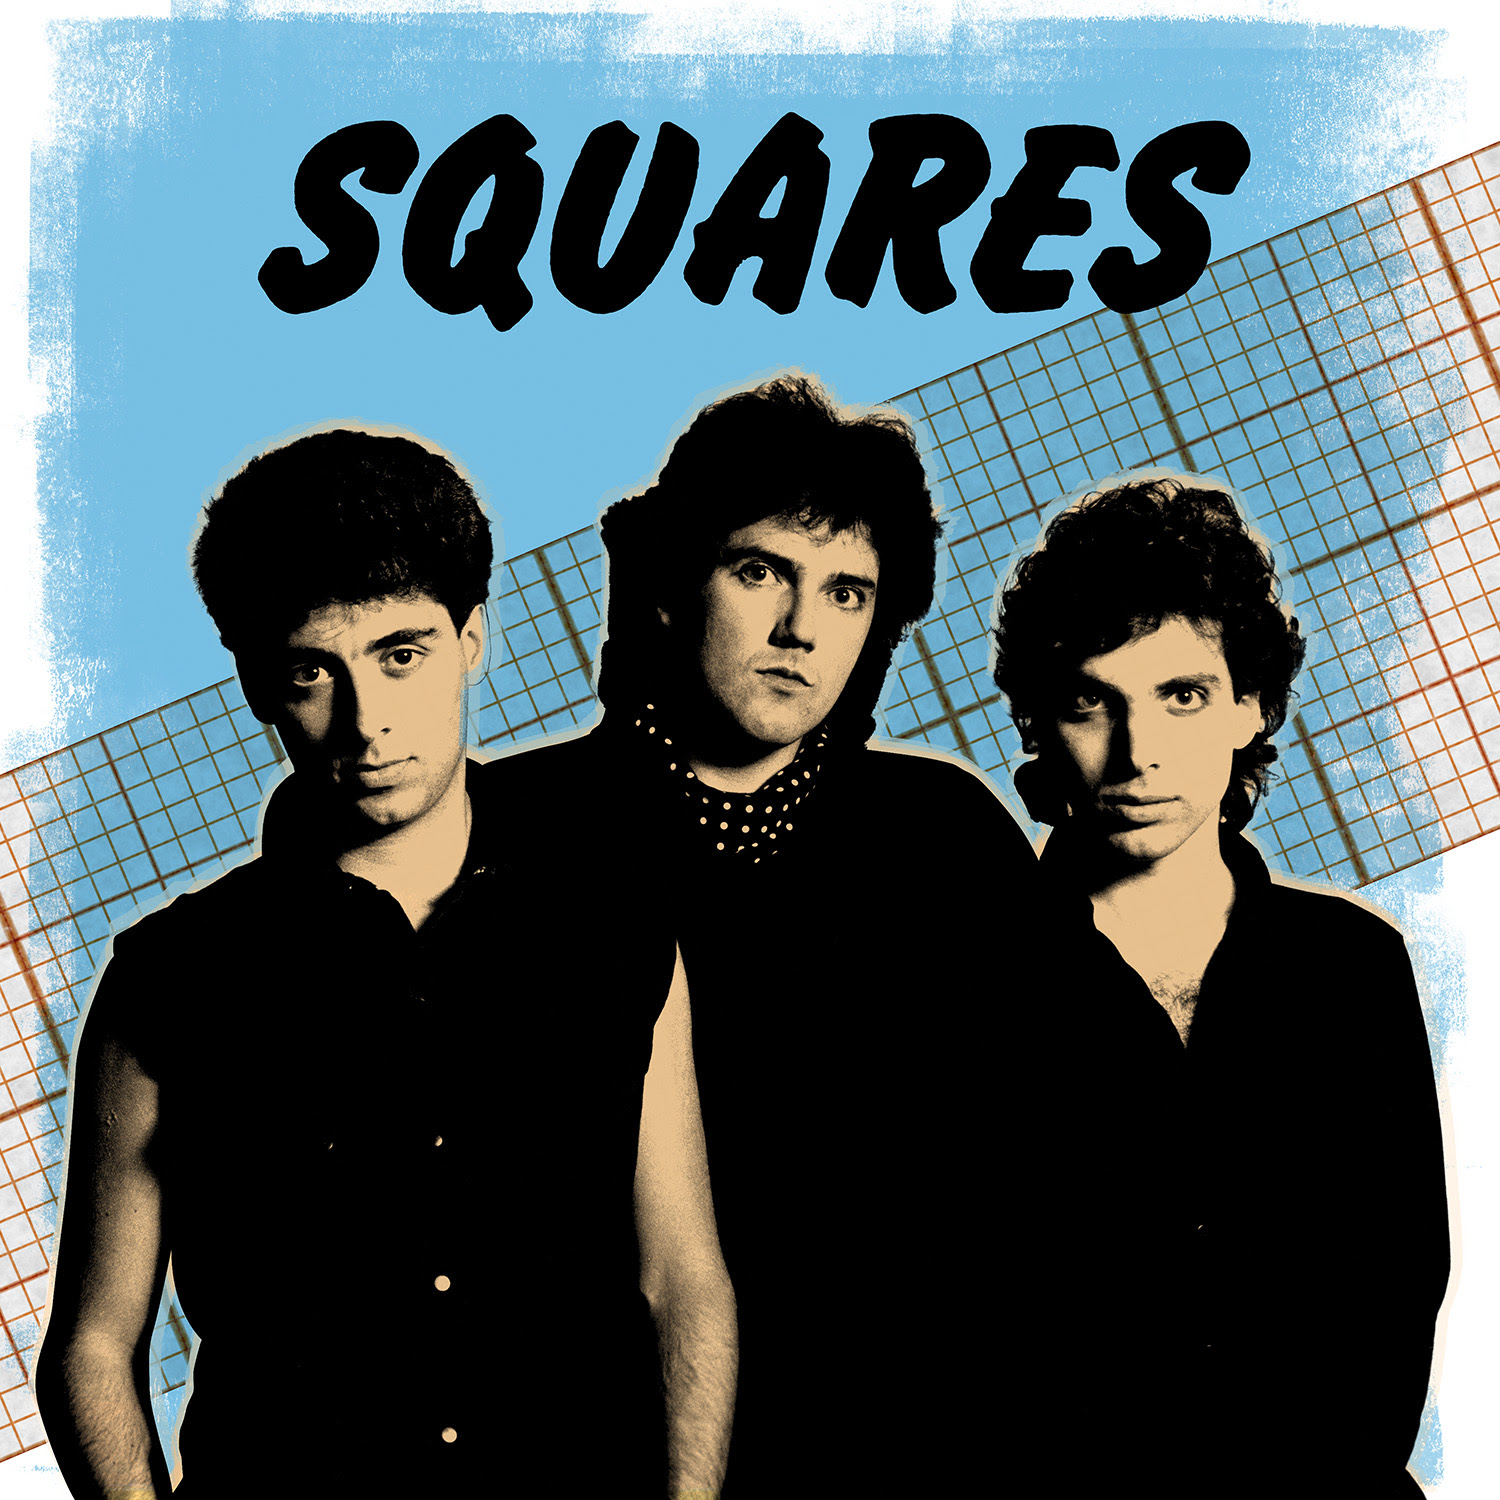 Joe Satriani To Release Squares - Best of the Early 80's Demos